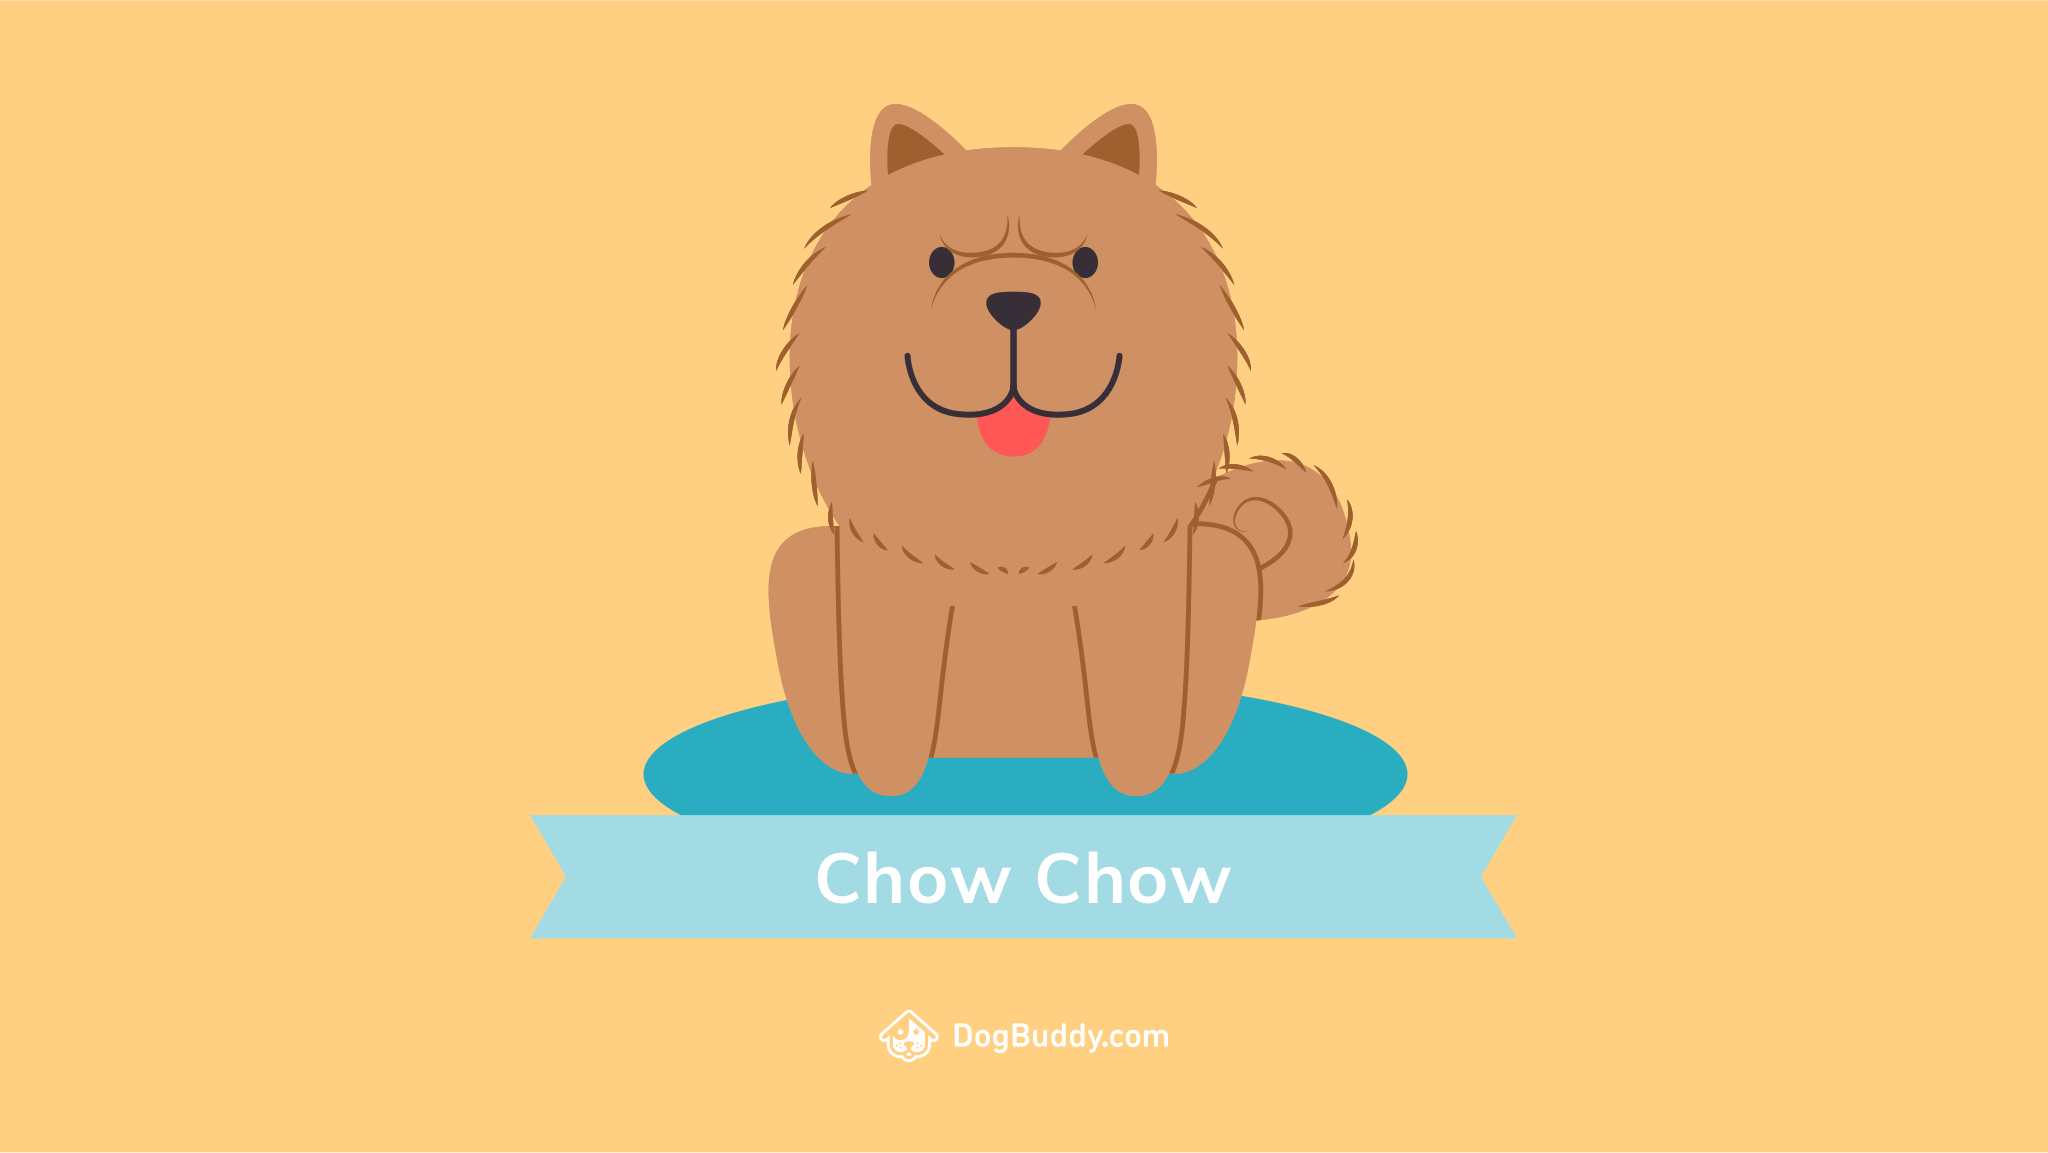 1240295 Chow Chow Wallpapers and Backgrounds